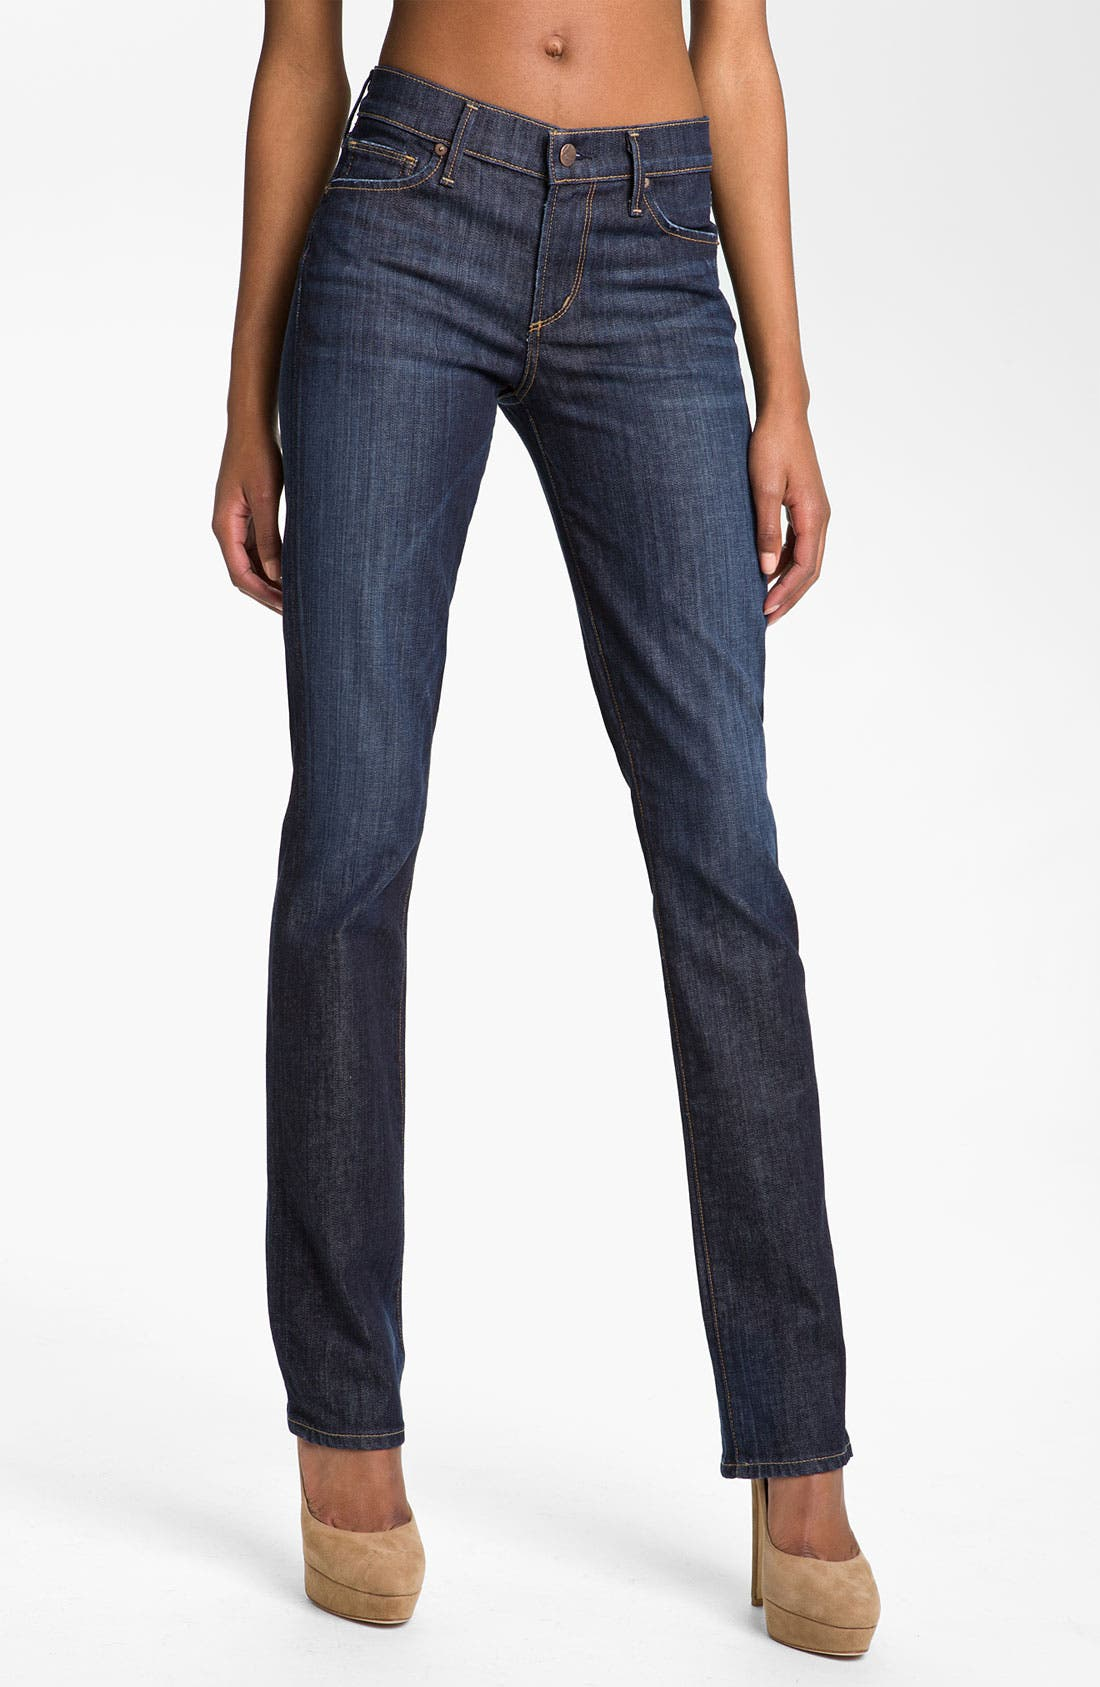 Alternate Image 1 Selected - Citizens of Humanity 'Elson' Straight Leg Jeans (Pacific Blue)